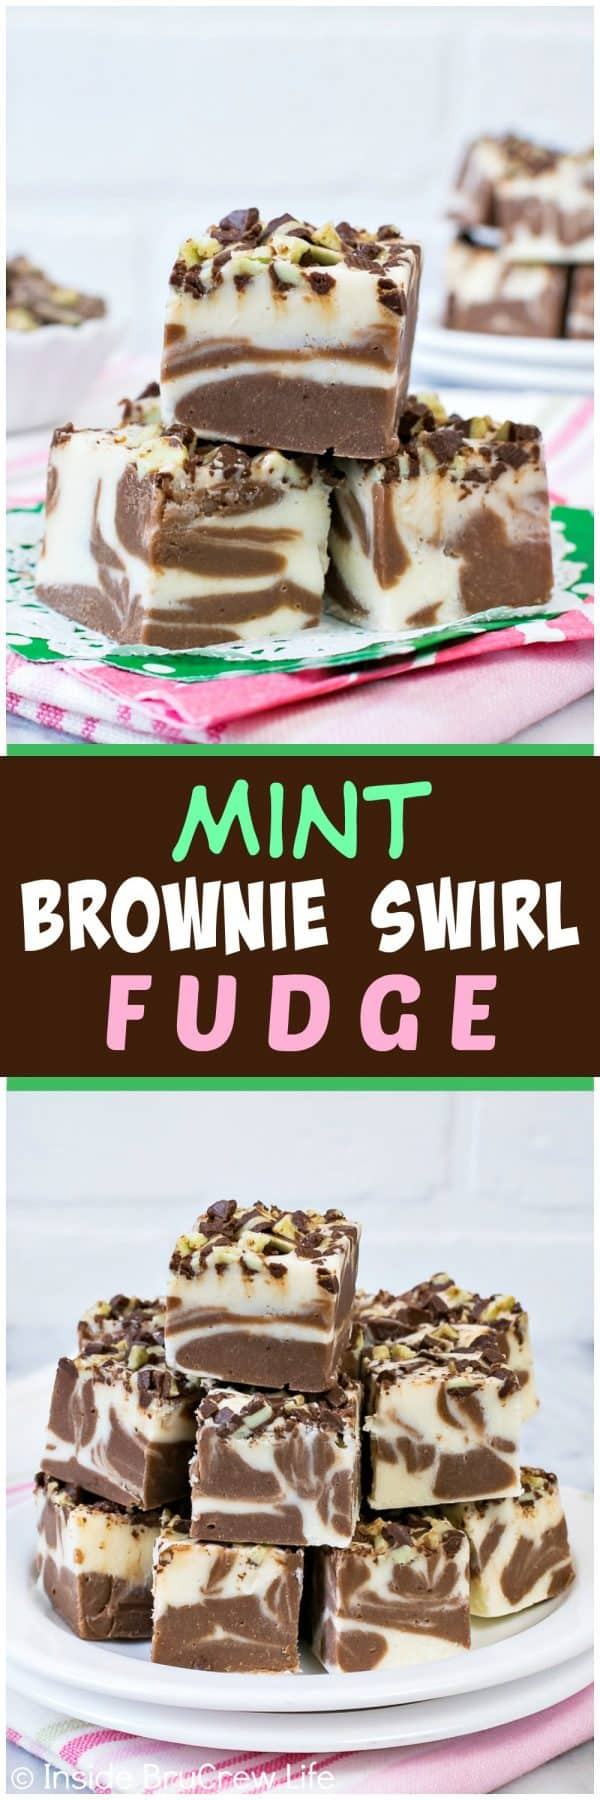 MInt Brownie Swirl Fudge - white chocolate and brownie mint fudge swirls make this such a pretty treat. Easy recipe for the holidays! #fudge #holiday #mint #brownie #easy #nobake #chocolate